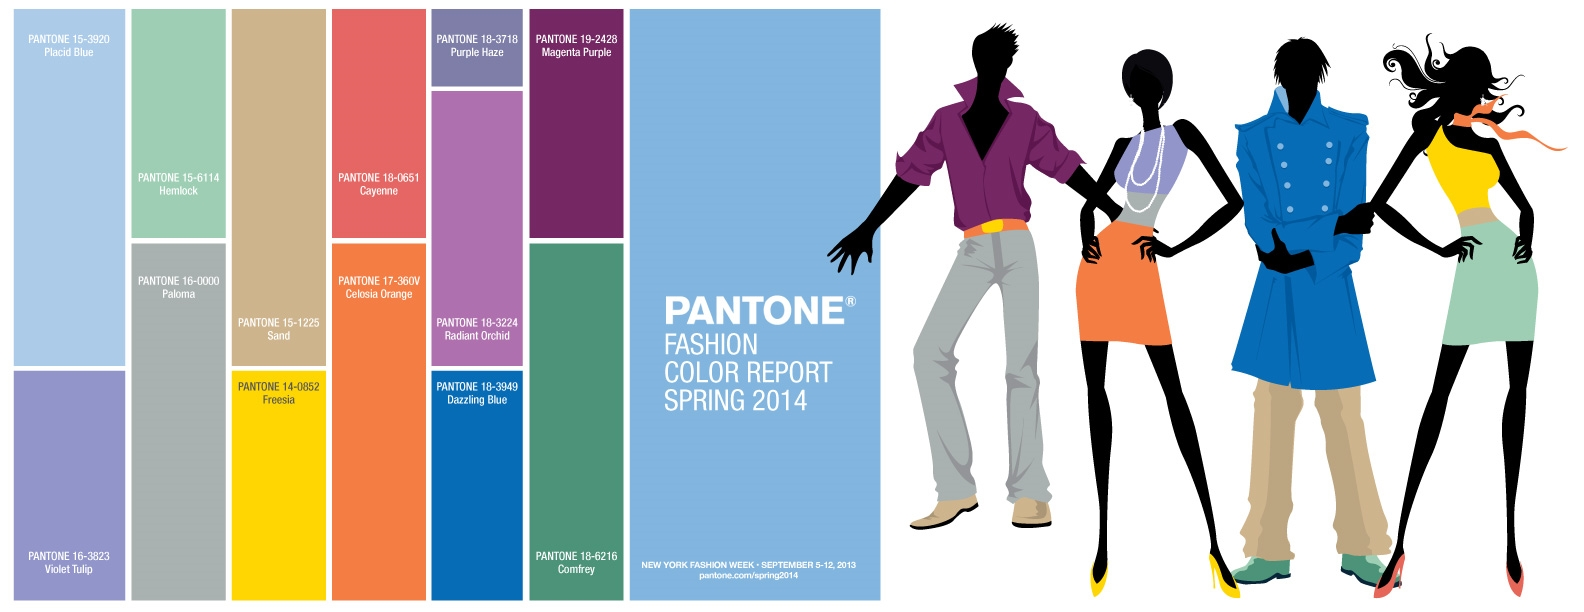 fashion color trends 2015 2016 fashion trends